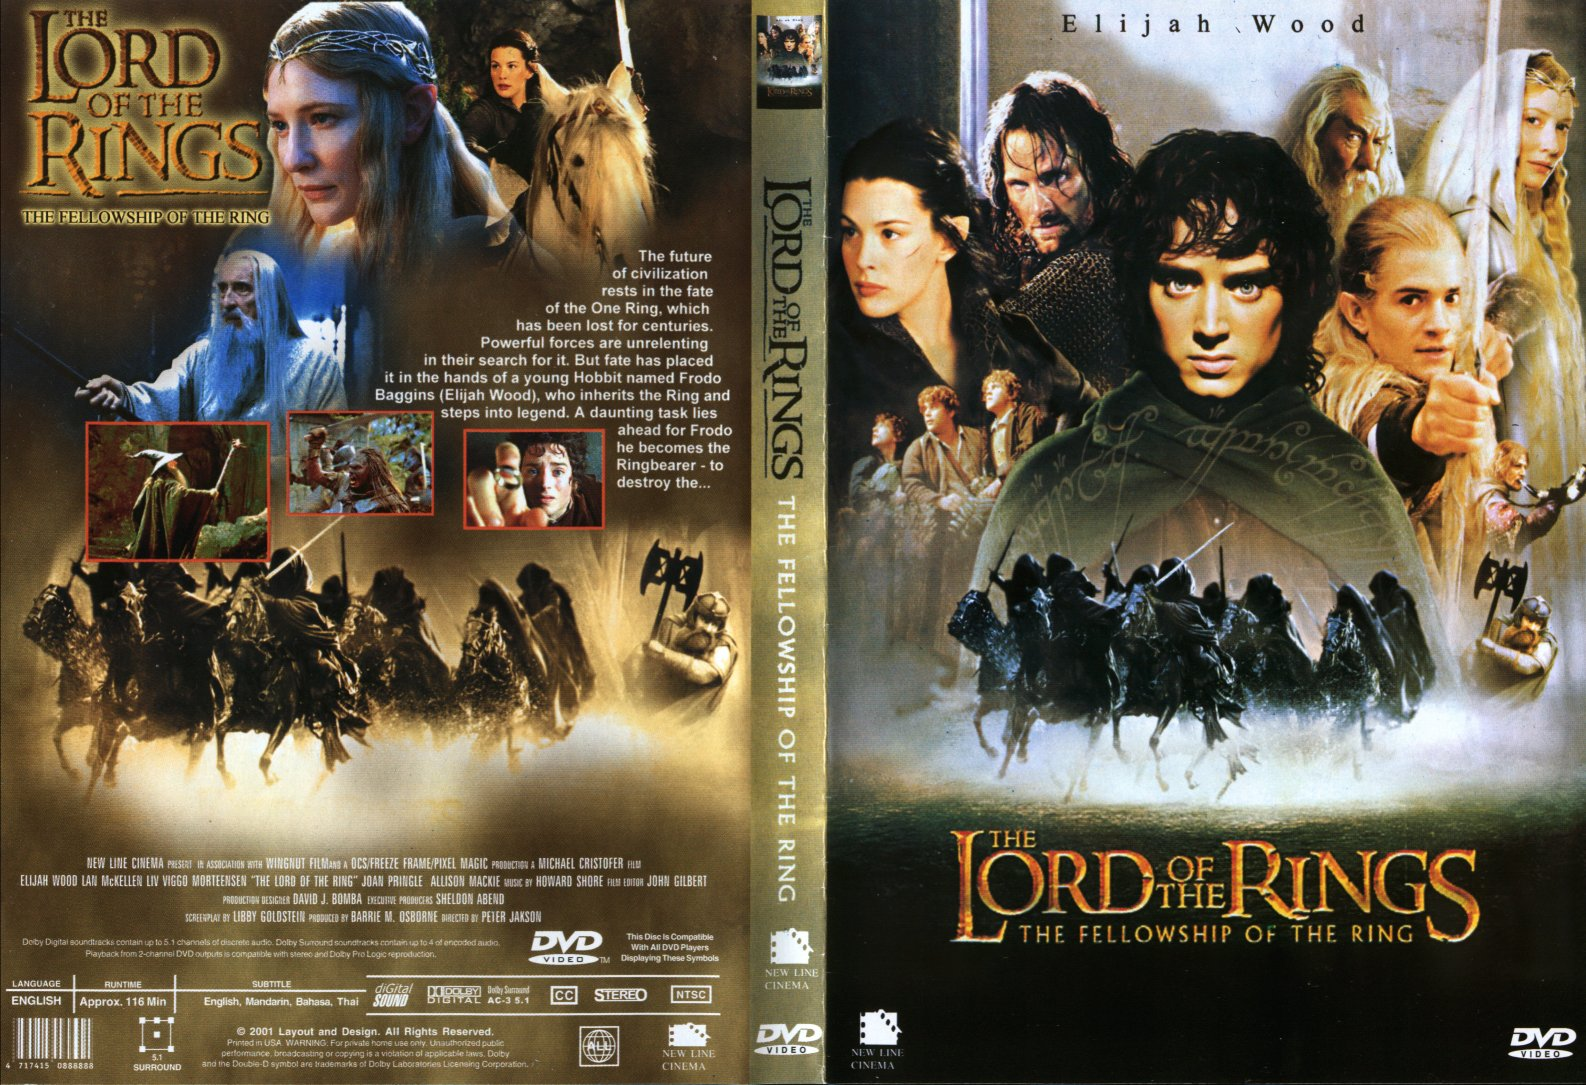 Covers Box Sk Lord Of The Rings The Fellowship Of The Ring The 2001 High Quality Dvd Blueray Movie